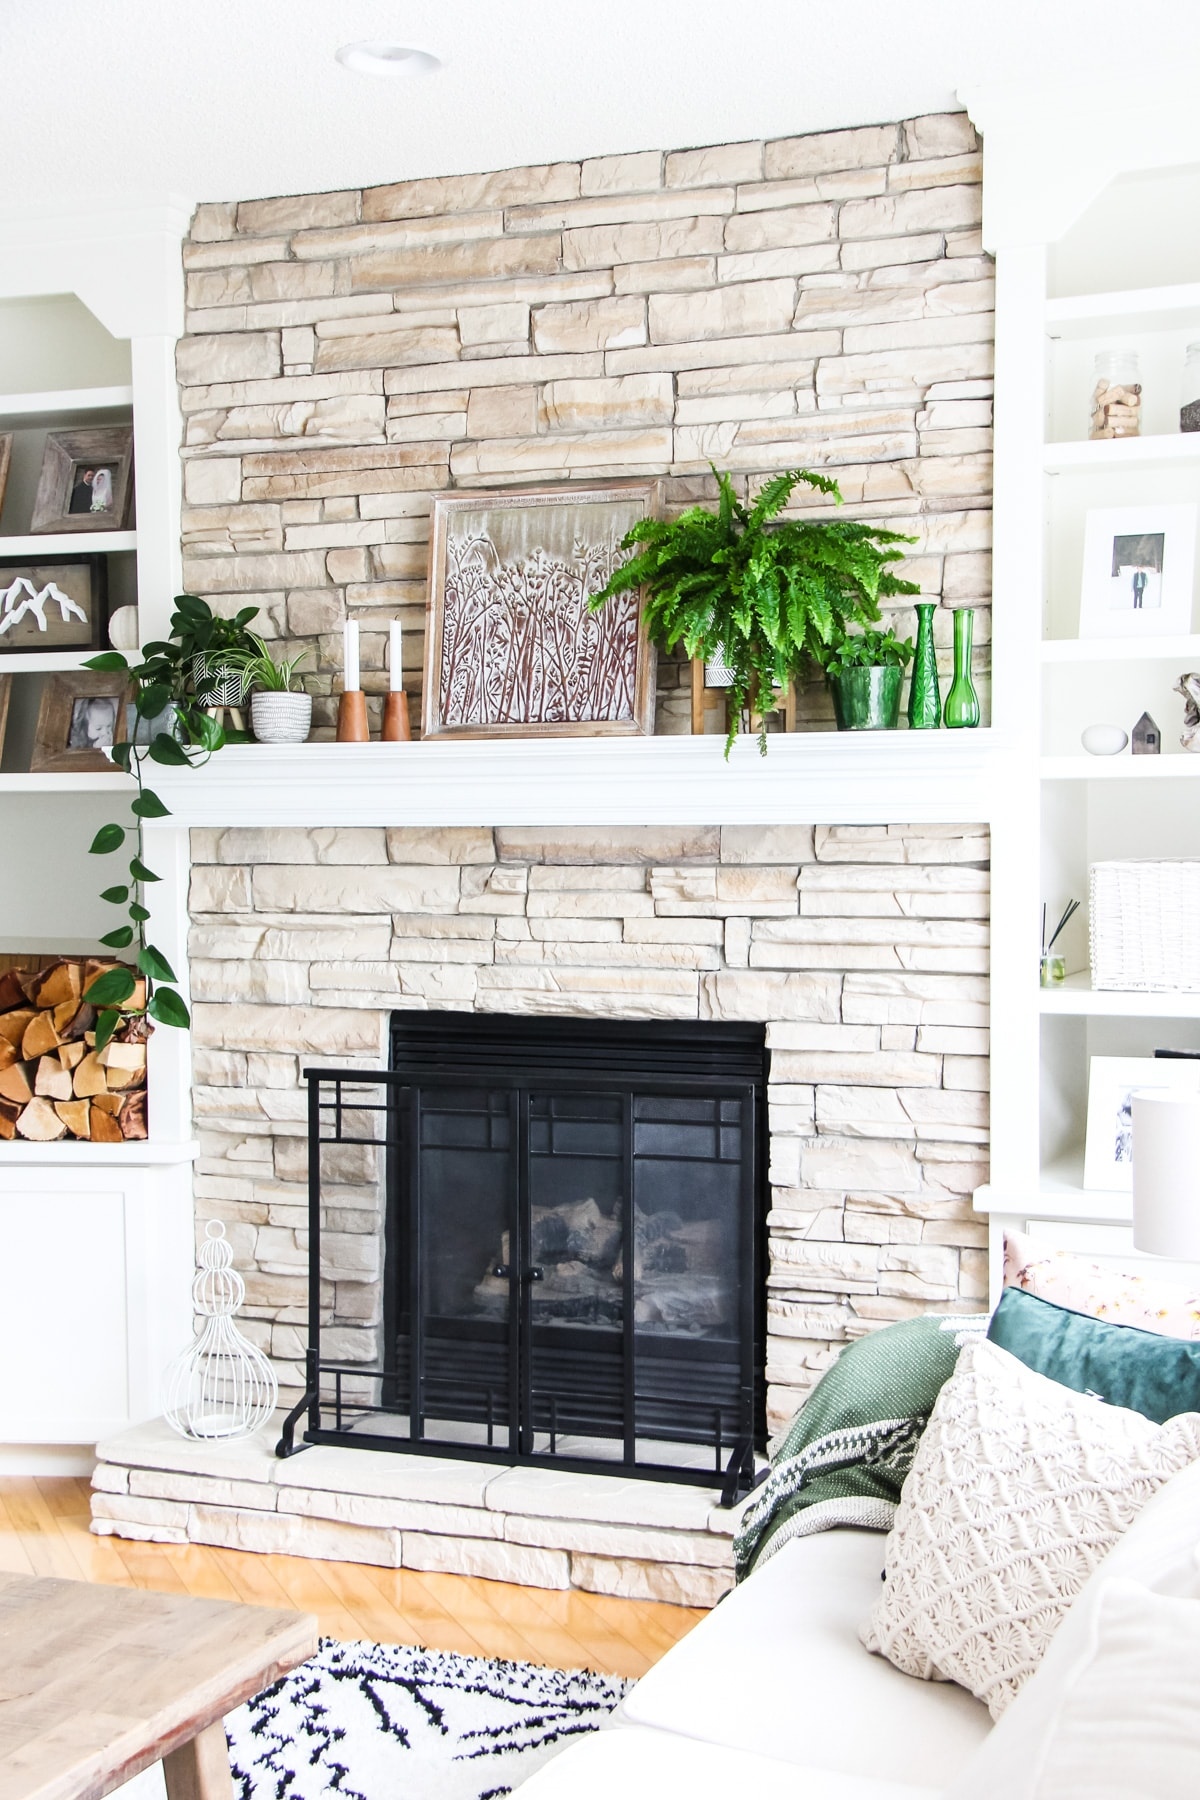 a side view of a light stone fireplace decorated with plants, candles and art.